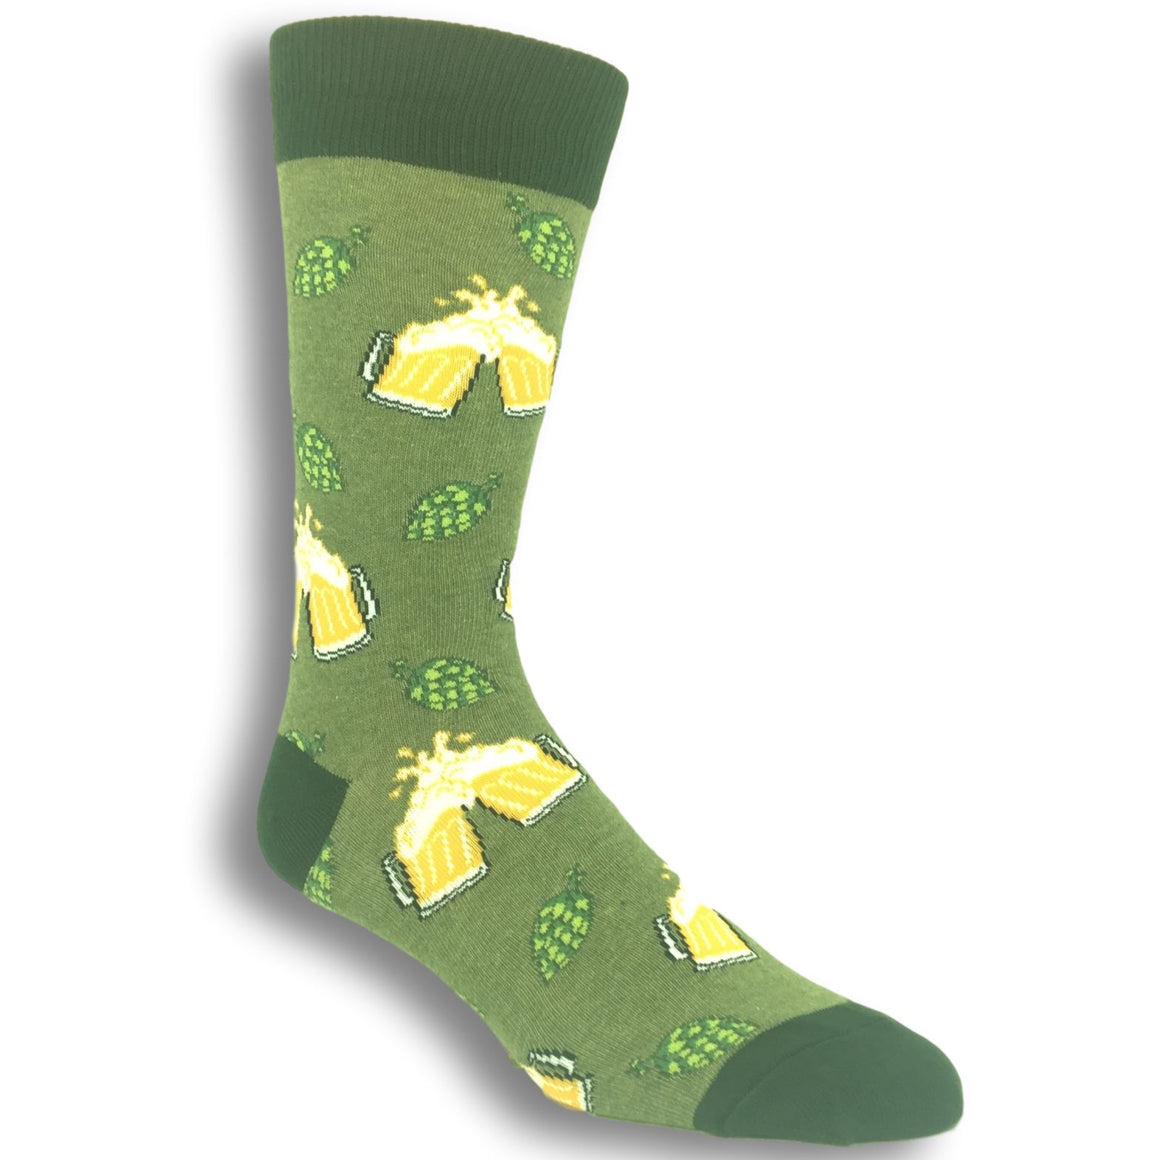 Hoppier Together Beer Socks in Green by SockSmith - The Sock Spot